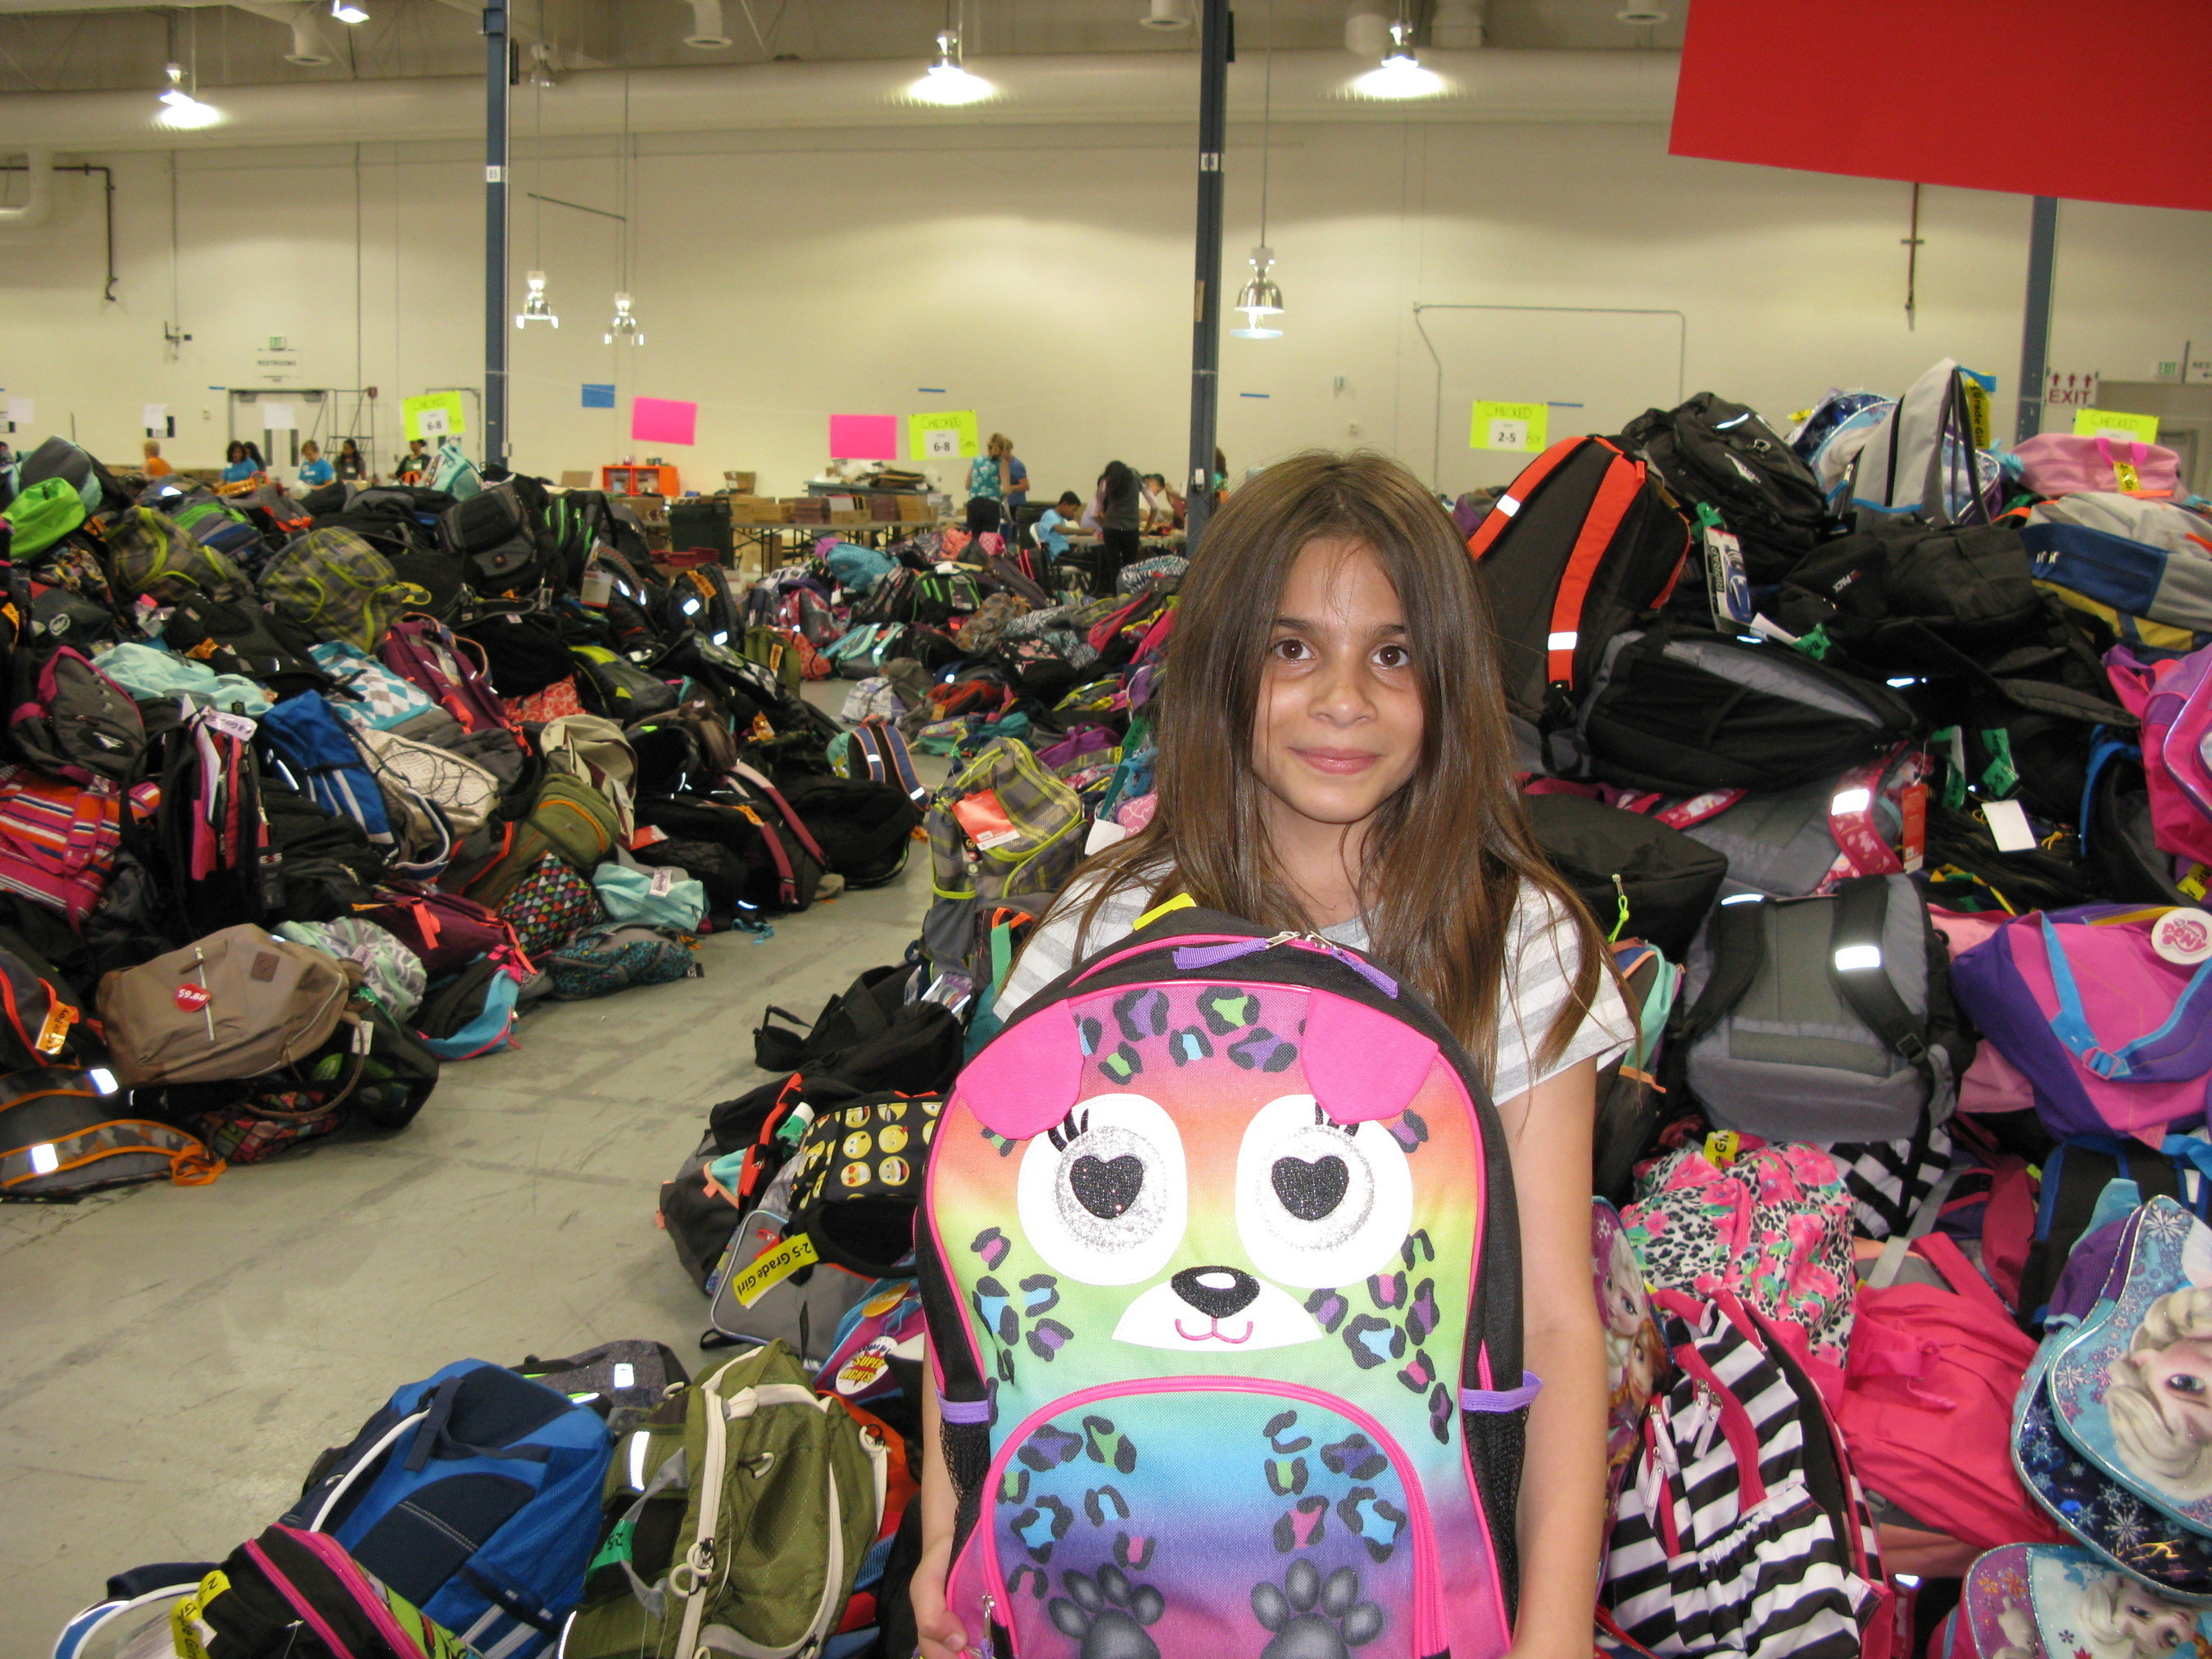 A youth volunteer stands among a sea of backpacks ready for distribution during last year's Back-to-School Drive.